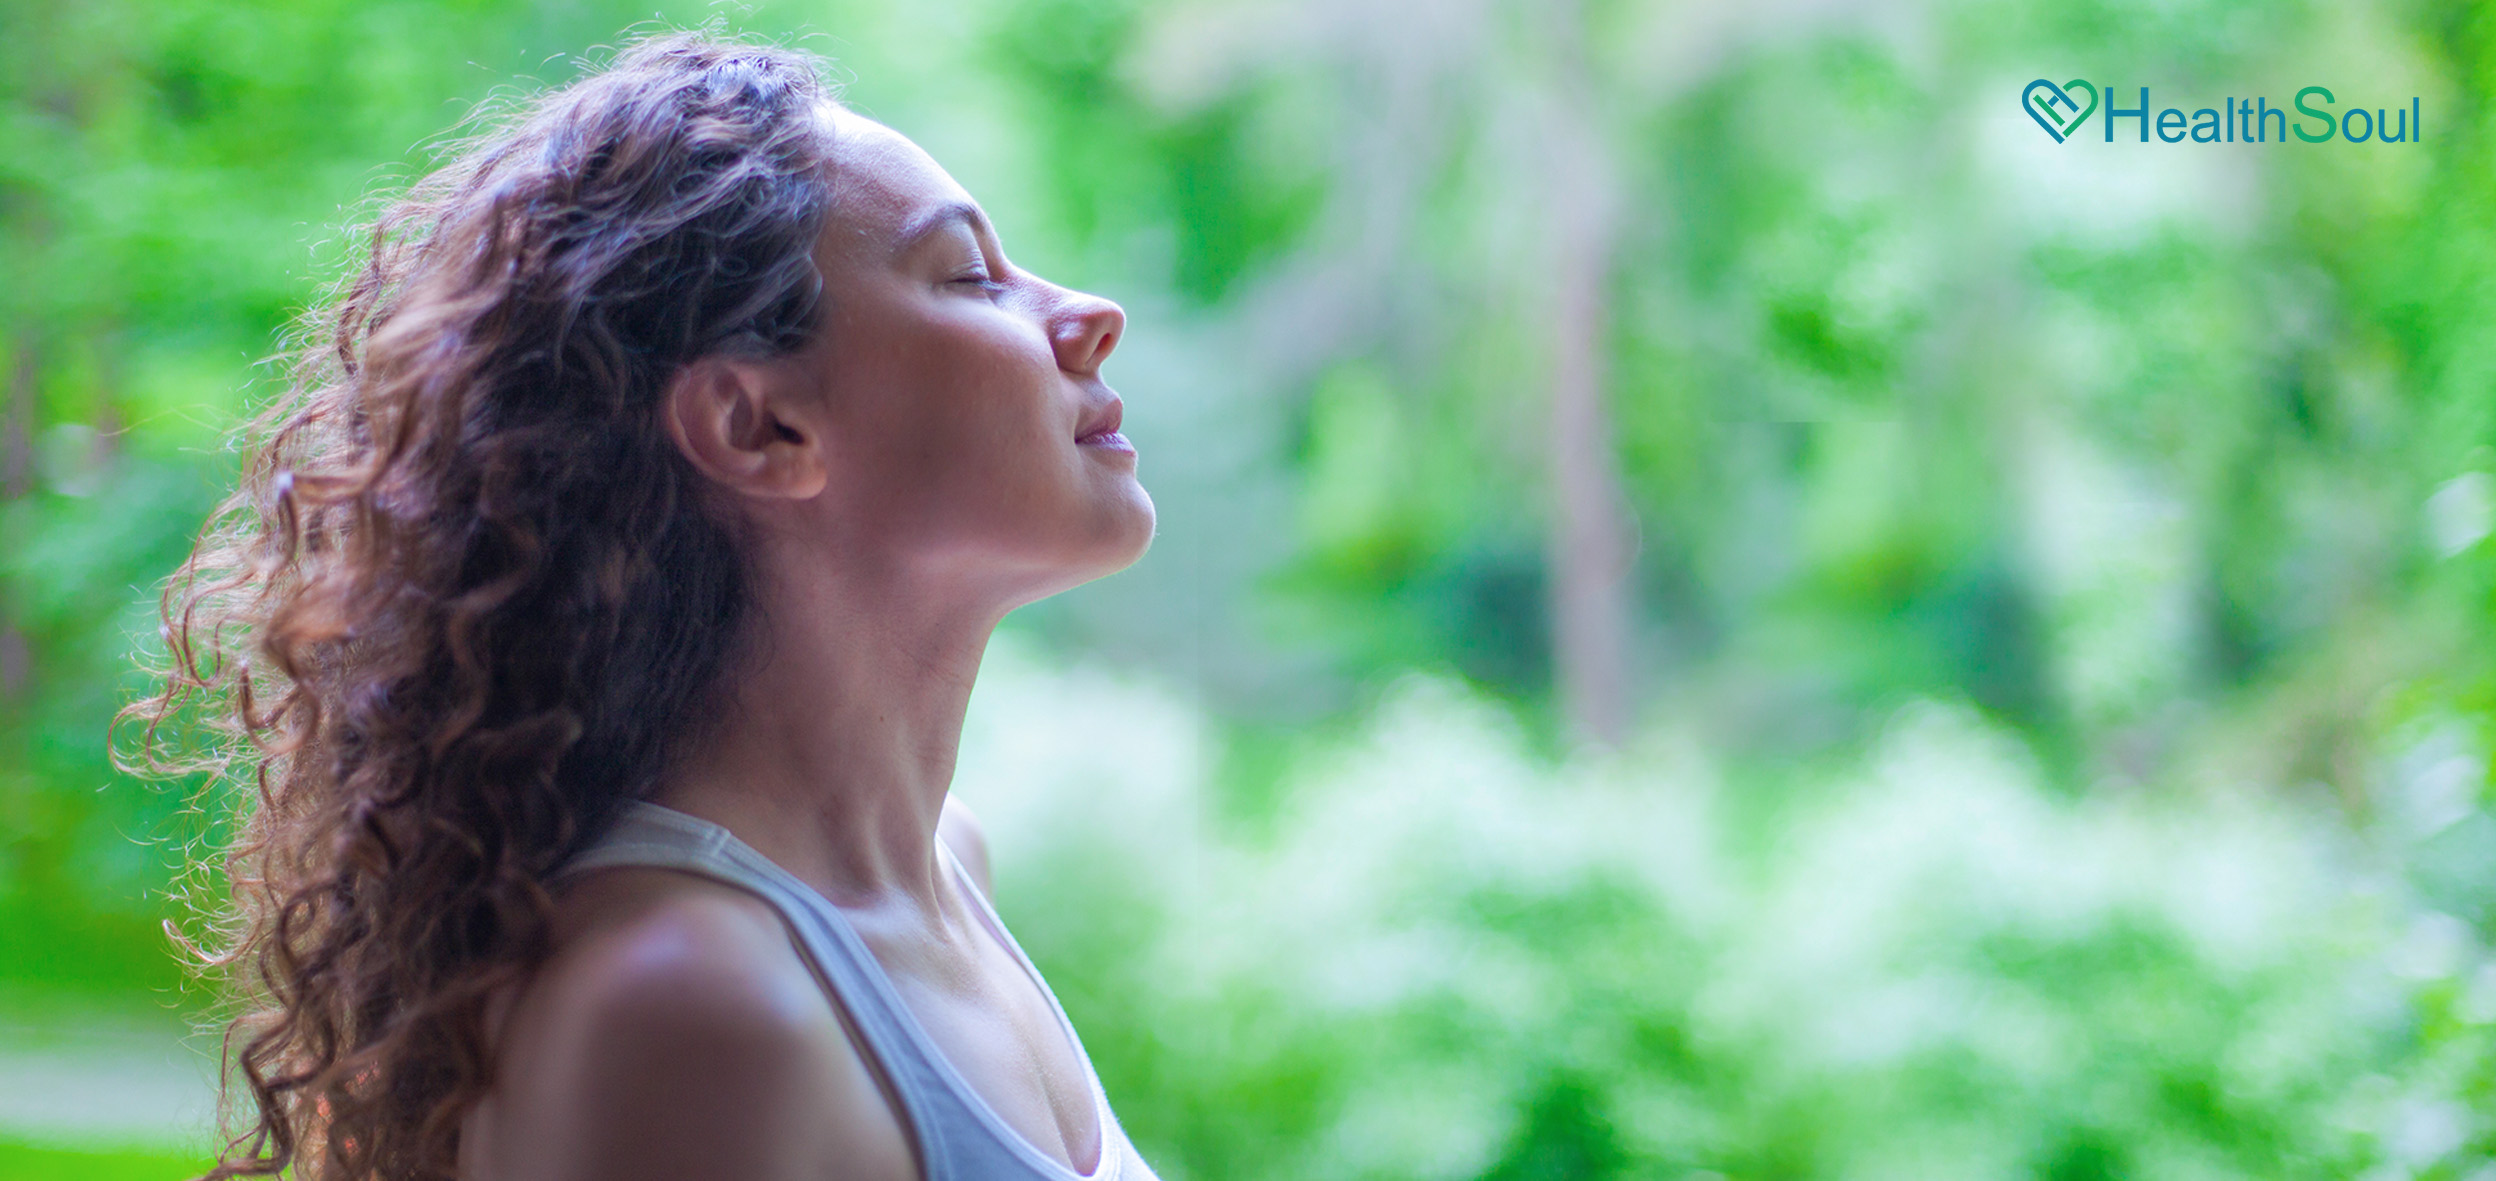 How Creating a Positive Change for Yourself Could Improve Your Mental Health | HealthSoul